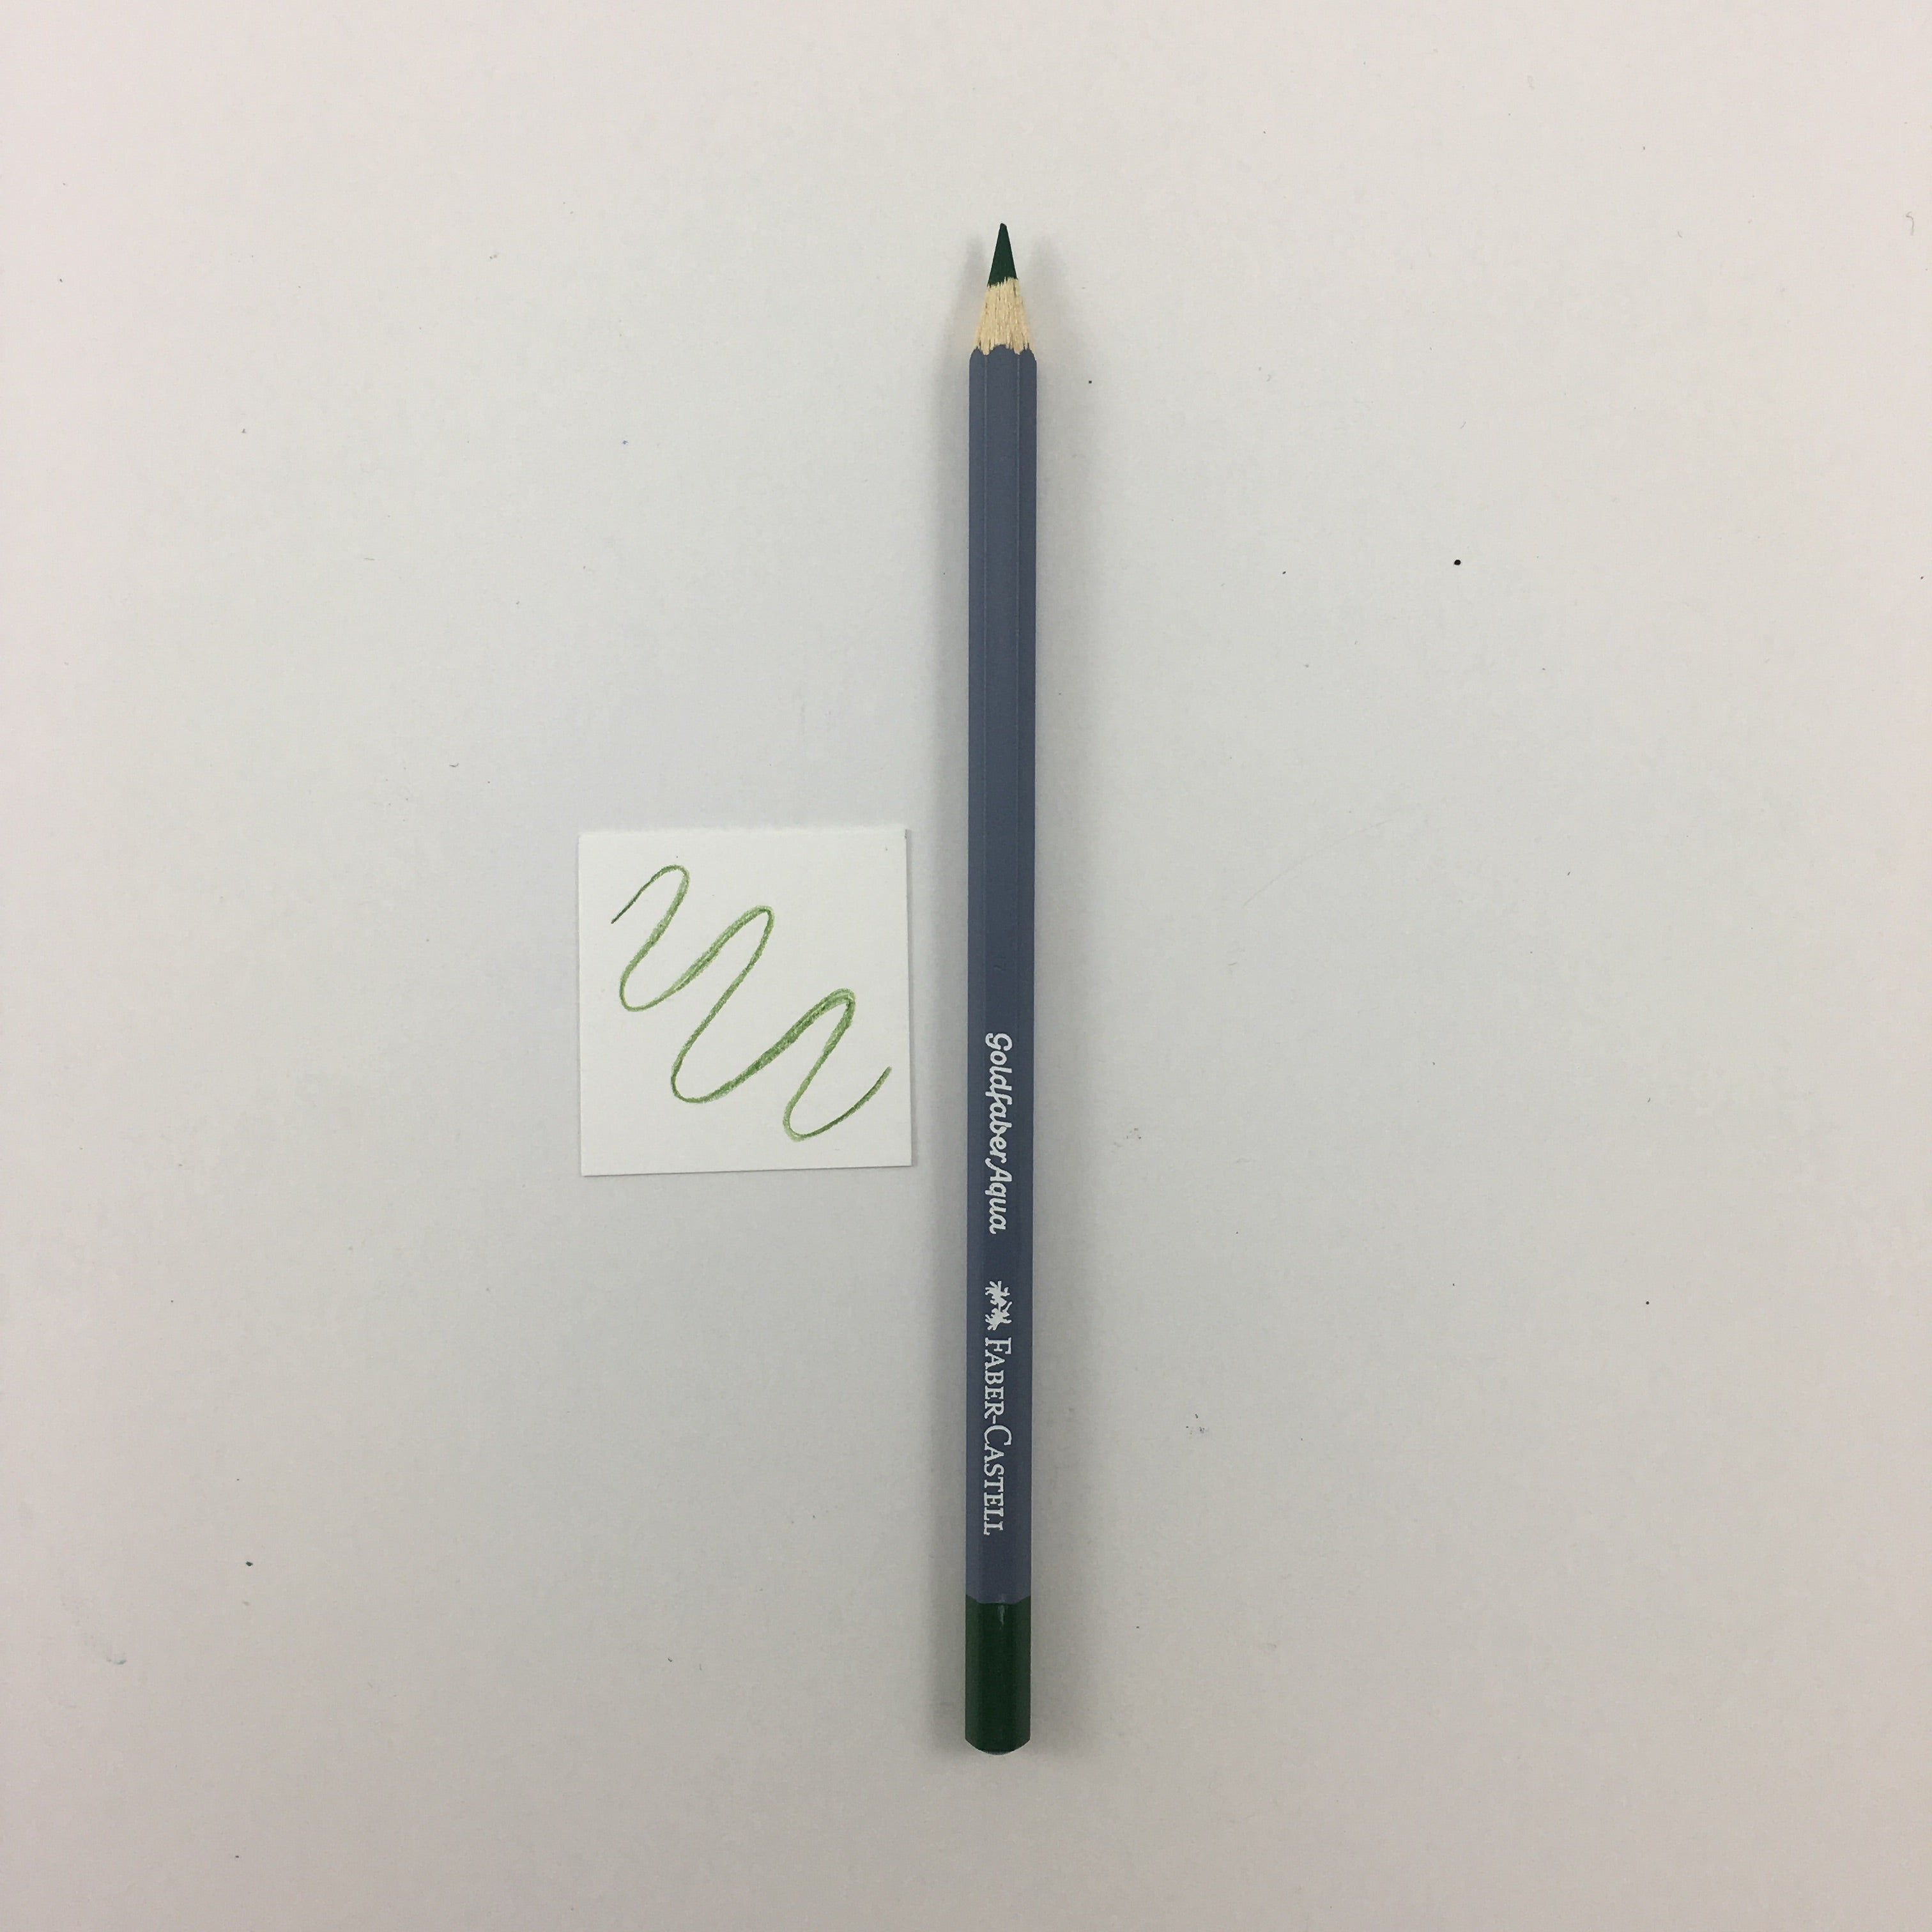 Faber-Castell Goldfaber Aqua Watercolor Pencils - Individuals - 167 - Permanent Green Olive by Faber-Castell - K. A. Artist Shop